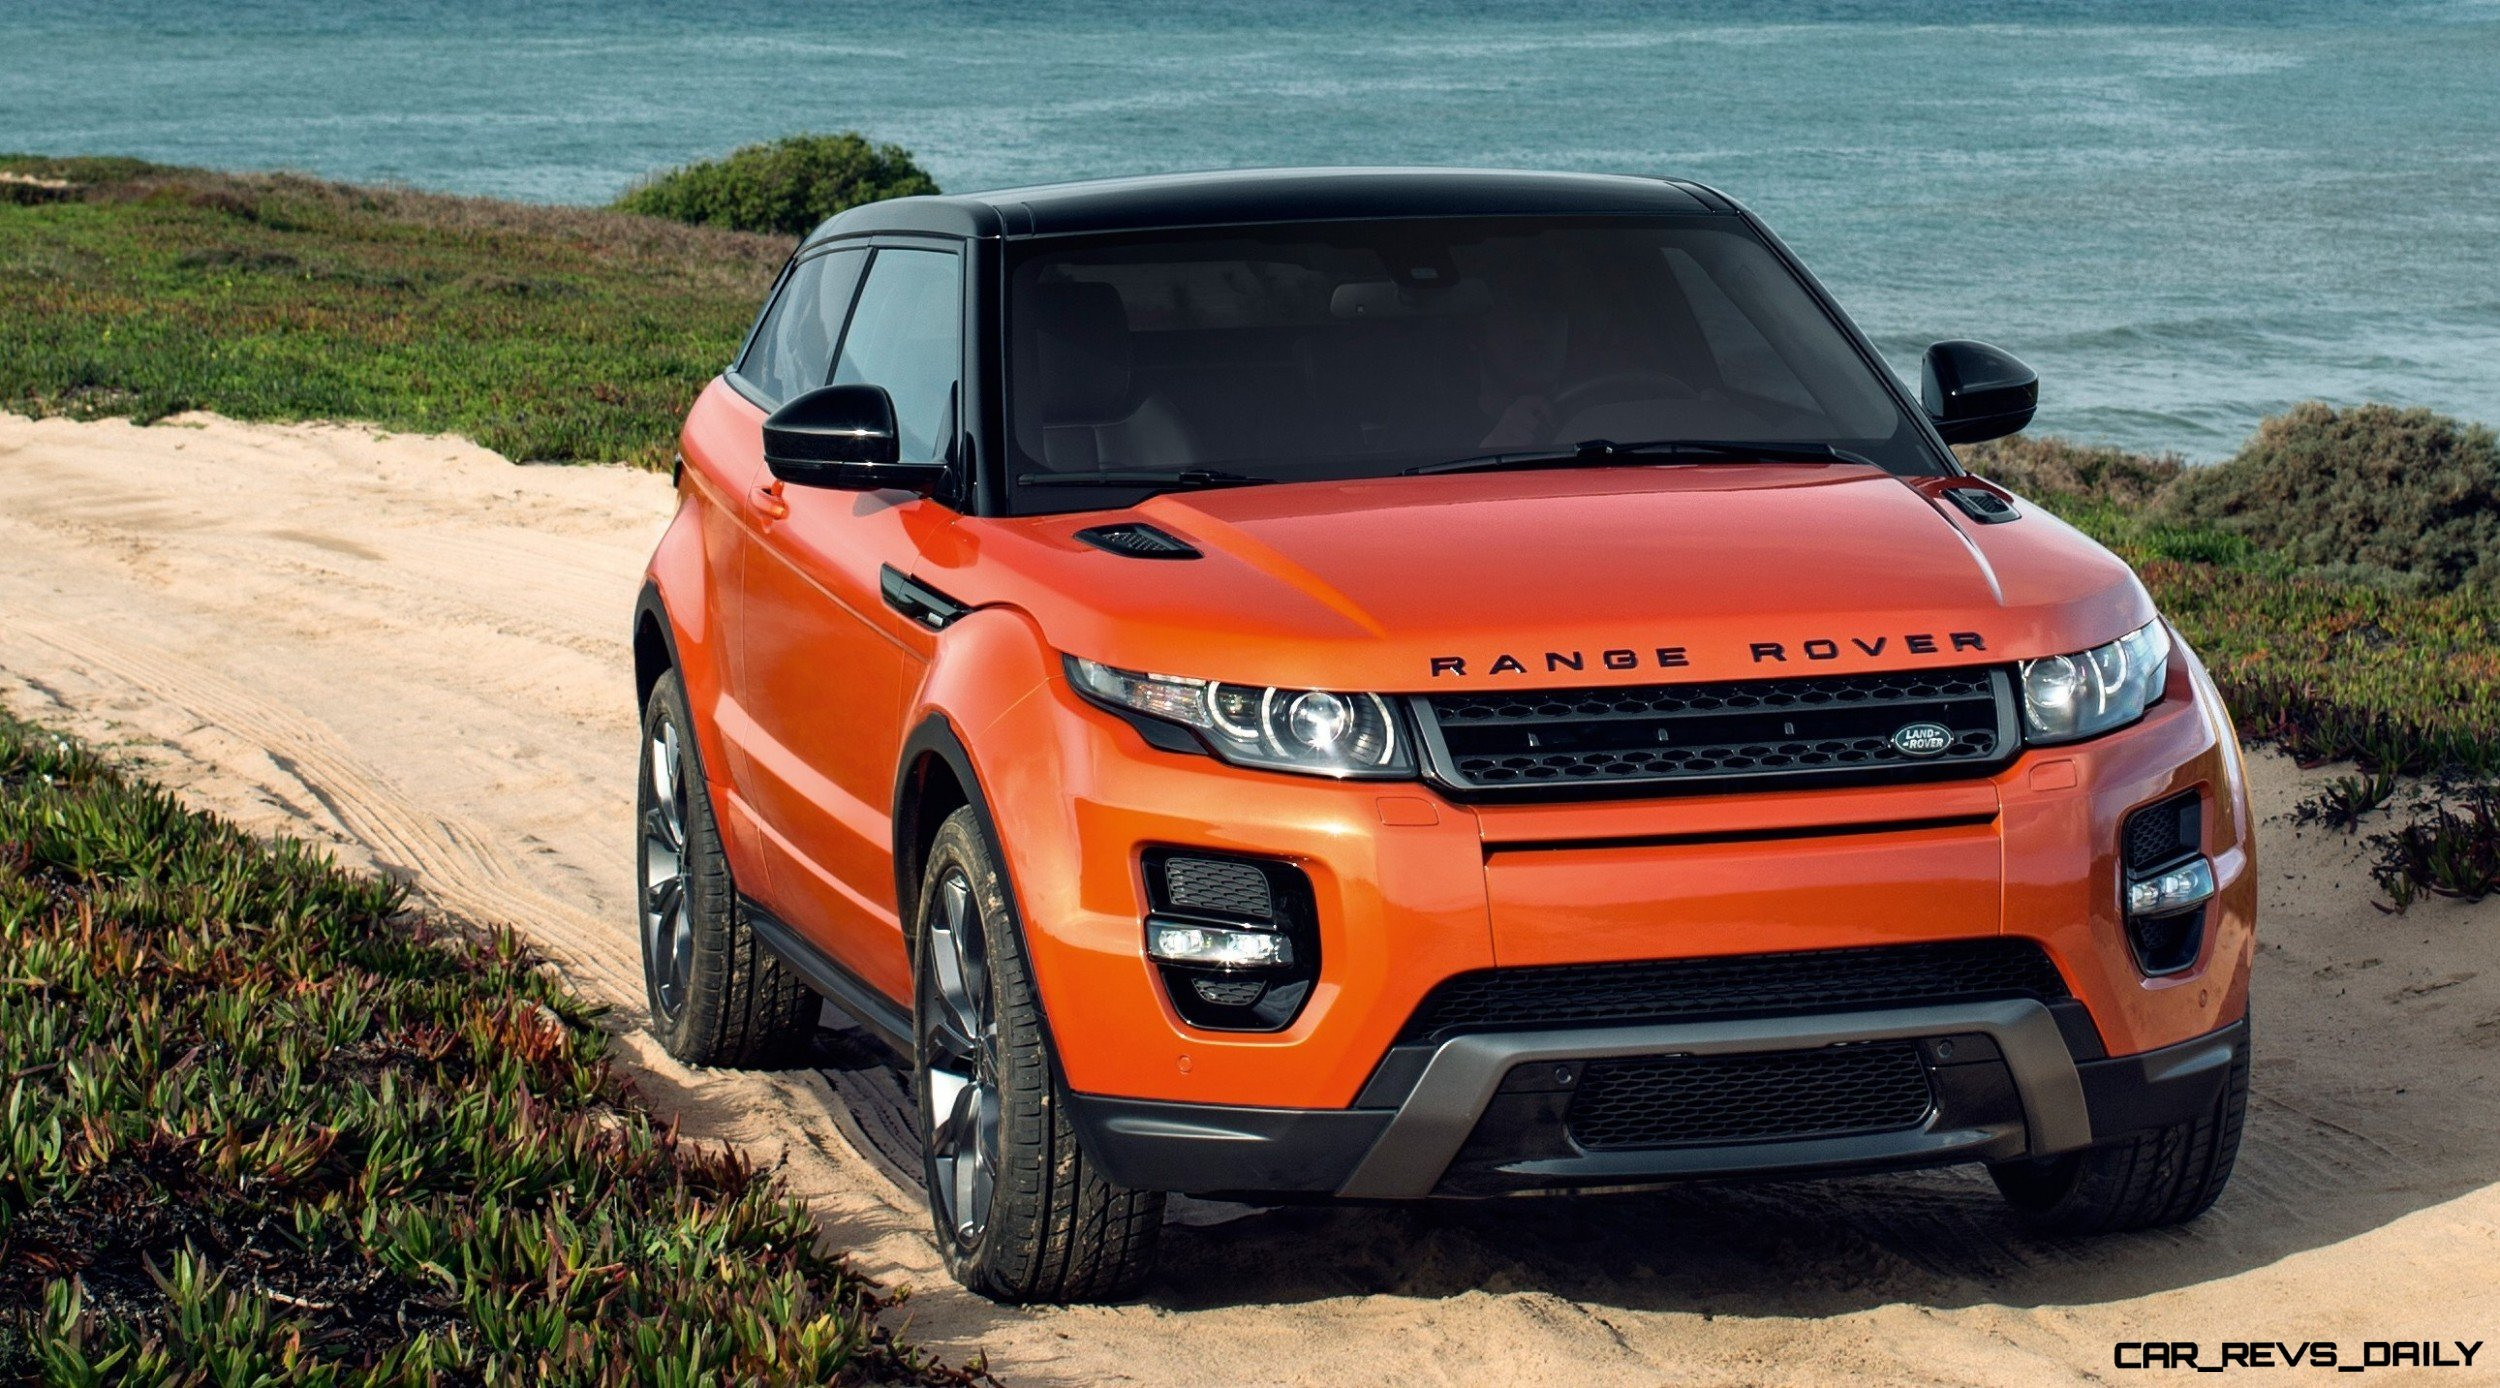 2015 Range Rover Evoque Gains 9-Speed Auto, Refreshed Info Tech and Boosted Engine HP 2015 Range Rover Evoque Gains 9-Speed Auto, Refreshed Info Tech and Boosted Engine HP 2015 Range Rover Evoque Gains 9-Speed Auto, Refreshed Info Tech and Boosted Engine HP 2015 Range Rover Evoque Gains 9-Speed Auto, Refreshed Info Tech and Boosted Engine HP 2015 Range Rover Evoque Gains 9-Speed Auto, Refreshed Info Tech and Boosted Engine HP 2015 Range Rover Evoque Gains 9-Speed Auto, Refreshed Info Tech and Boosted Engine HP 2015 Range Rover Evoque Gains 9-Speed Auto, Refreshed Info Tech and Boosted Engine HP 2015 Range Rover Evoque Gains 9-Speed Auto, Refreshed Info Tech and Boosted Engine HP 2015 Range Rover Evoque Gains 9-Speed Auto, Refreshed Info Tech and Boosted Engine HP 2015 Range Rover Evoque Gains 9-Speed Auto, Refreshed Info Tech and Boosted Engine HP 2015 Range Rover Evoque Gains 9-Speed Auto, Refreshed Info Tech and Boosted Engine HP 2015 Range Rover Evoque Gains 9-Speed Auto, Refreshed Info Tech and Boosted Engine HP 2015 Range Rover Evoque Gains 9-Speed Auto, Refreshed Info Tech and Boosted Engine HP 2015 Range Rover Evoque Gains 9-Speed Auto, Refreshed Info Tech and Boosted Engine HP 2015 Range Rover Evoque Gains 9-Speed Auto, Refreshed Info Tech and Boosted Engine HP 2015 Range Rover Evoque Gains 9-Speed Auto, Refreshed Info Tech and Boosted Engine HP 2015 Range Rover Evoque Gains 9-Speed Auto, Refreshed Info Tech and Boosted Engine HP 2015 Range Rover Evoque Gains 9-Speed Auto, Refreshed Info Tech and Boosted Engine HP 2015 Range Rover Evoque Gains 9-Speed Auto, Refreshed Info Tech and Boosted Engine HP 2015 Range Rover Evoque Gains 9-Speed Auto, Refreshed Info Tech and Boosted Engine HP 2015 Range Rover Evoque Gains 9-Speed Auto, Refreshed Info Tech and Boosted Engine HP 2015 Range Rover Evoque Gains 9-Speed Auto, Refreshed Info Tech and Boosted Engine HP 2015 Range Rover Evoque Gains 9-Speed Auto, Refreshed Info Tech and Boosted Engine HP 2015 Range Rover Evoque Gains 9-Speed Auto, Refreshed Info Tech and Boosted Engine HP 2015 Range Rover Evoque Gains 9-Speed Auto, Refreshed Info Tech and Boosted Engine HP 2015 Range Rover Evoque Gains 9-Speed Auto, Refreshed Info Tech and Boosted Engine HP 2015 Range Rover Evoque Gains 9-Speed Auto, Refreshed Info Tech and Boosted Engine HP 2015 Range Rover Evoque Gains 9-Speed Auto, Refreshed Info Tech and Boosted Engine HP 2015 Range Rover Evoque Gains 9-Speed Auto, Refreshed Info Tech and Boosted Engine HP 2015 Range Rover Evoque Gains 9-Speed Auto, Refreshed Info Tech and Boosted Engine HP 2015 Range Rover Evoque Gains 9-Speed Auto, Refreshed Info Tech and Boosted Engine HP